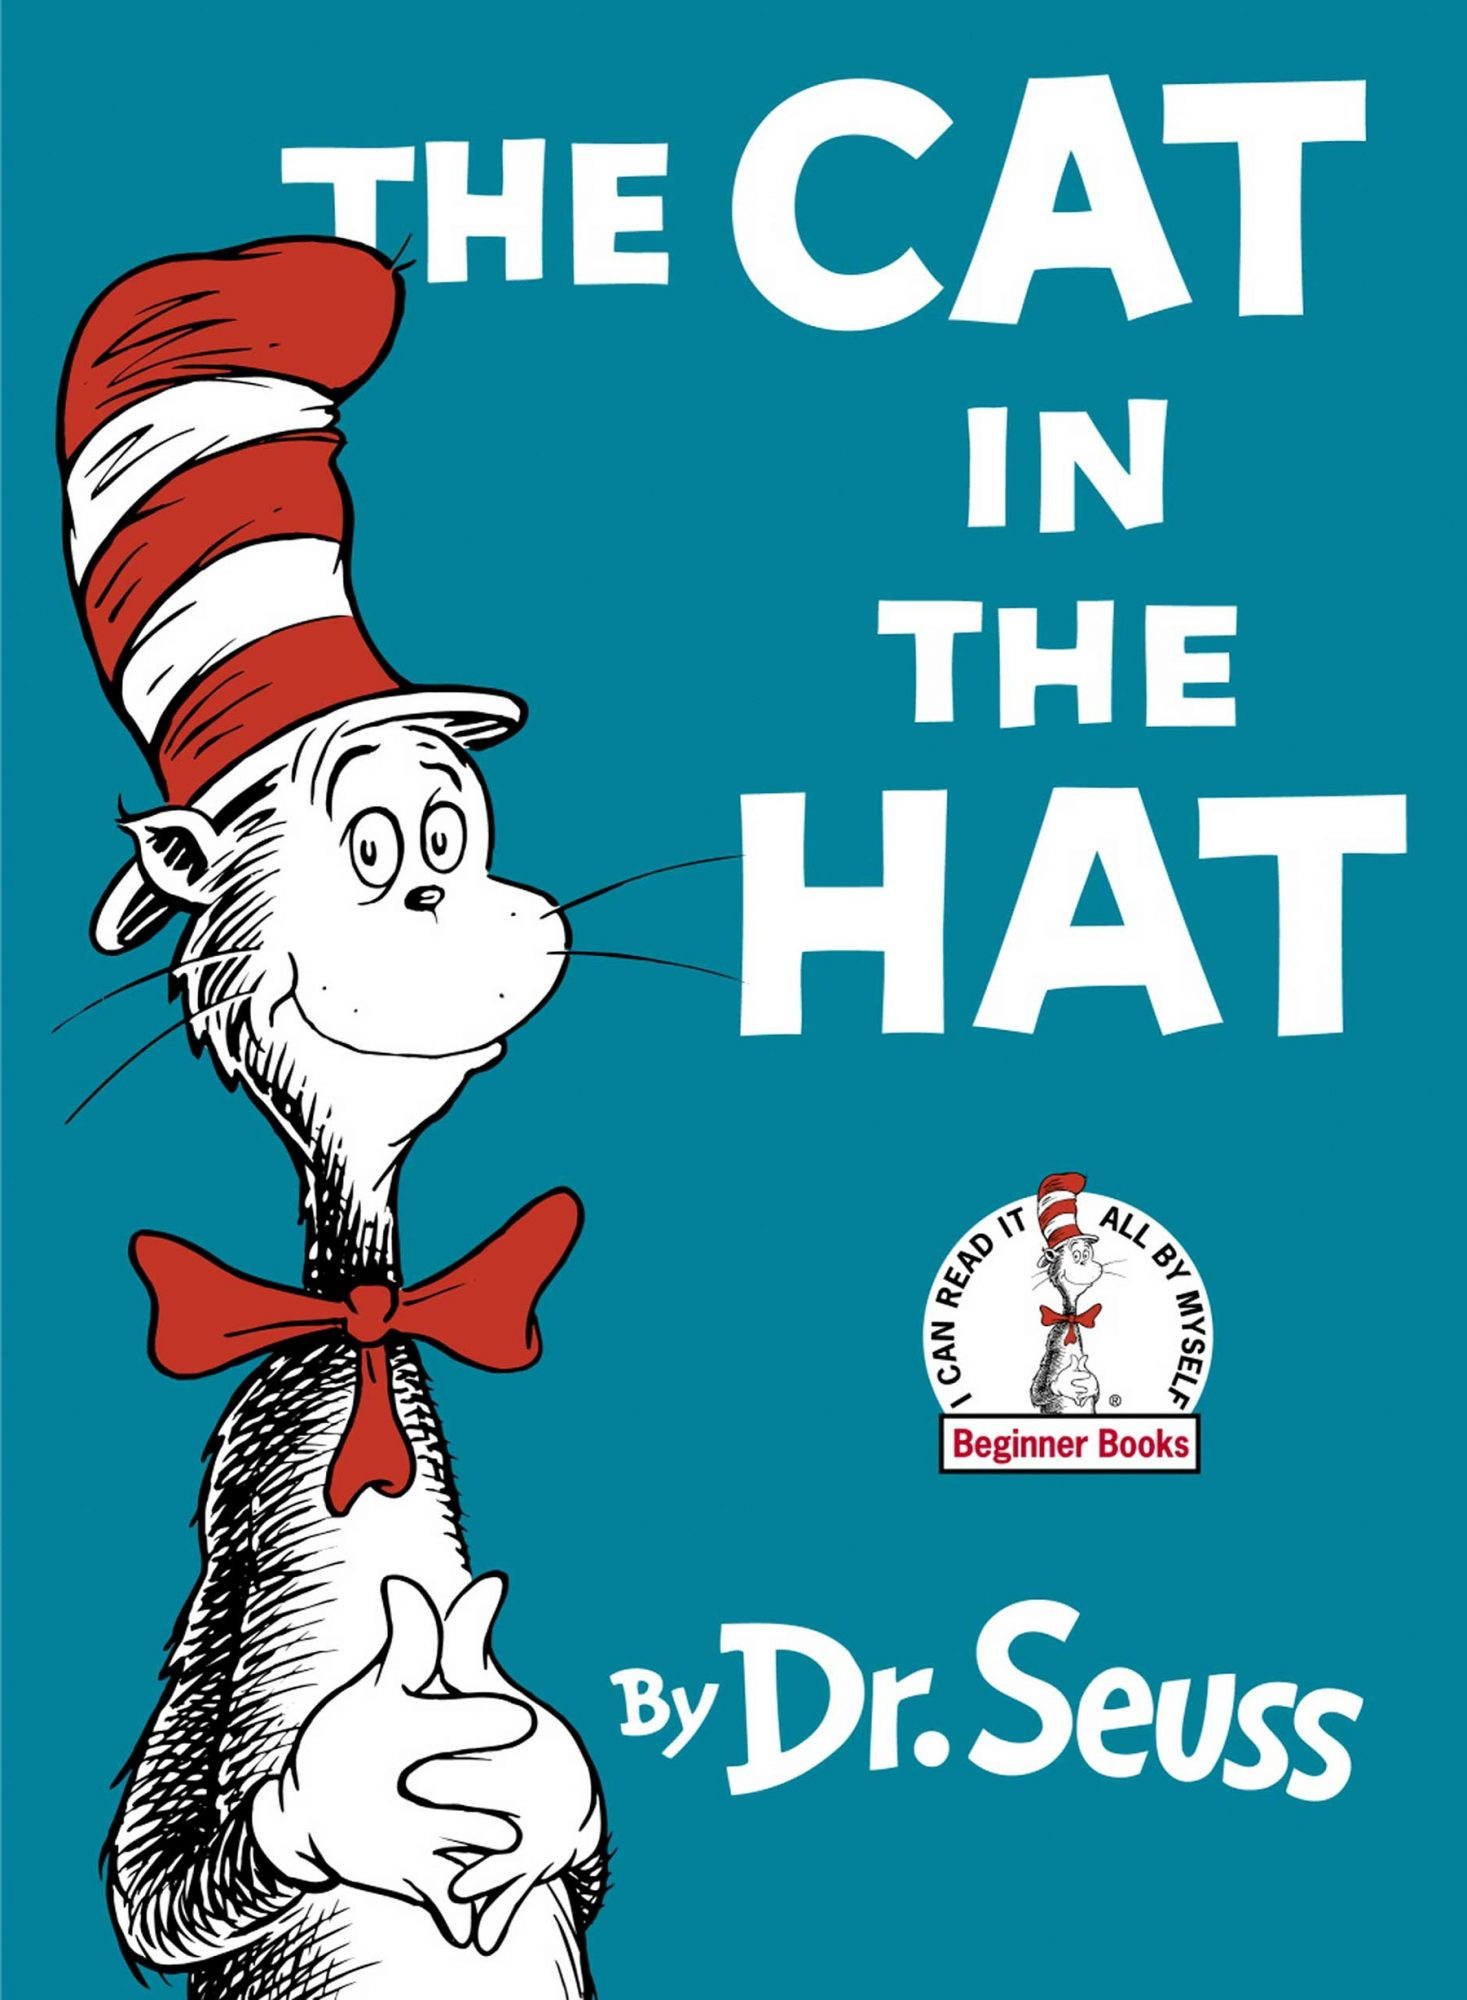 The Cat in the Hat Dr. Seuss Bookcover CR: Random House Children's Books